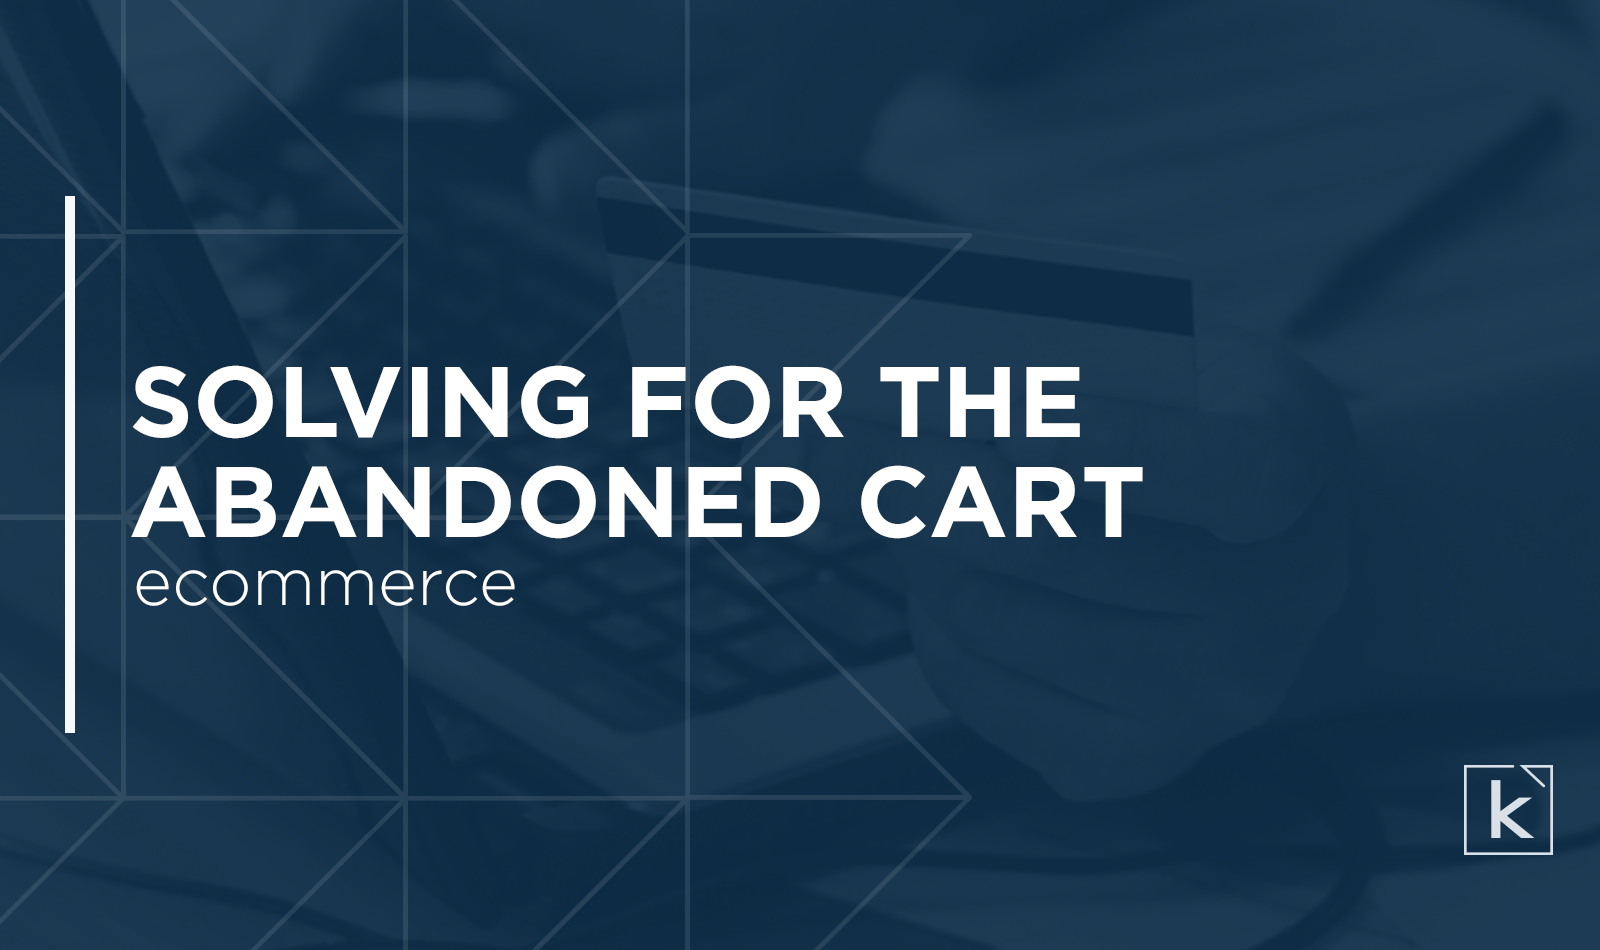 solving-for-abandoned-cart-person-with-computer-credit-card